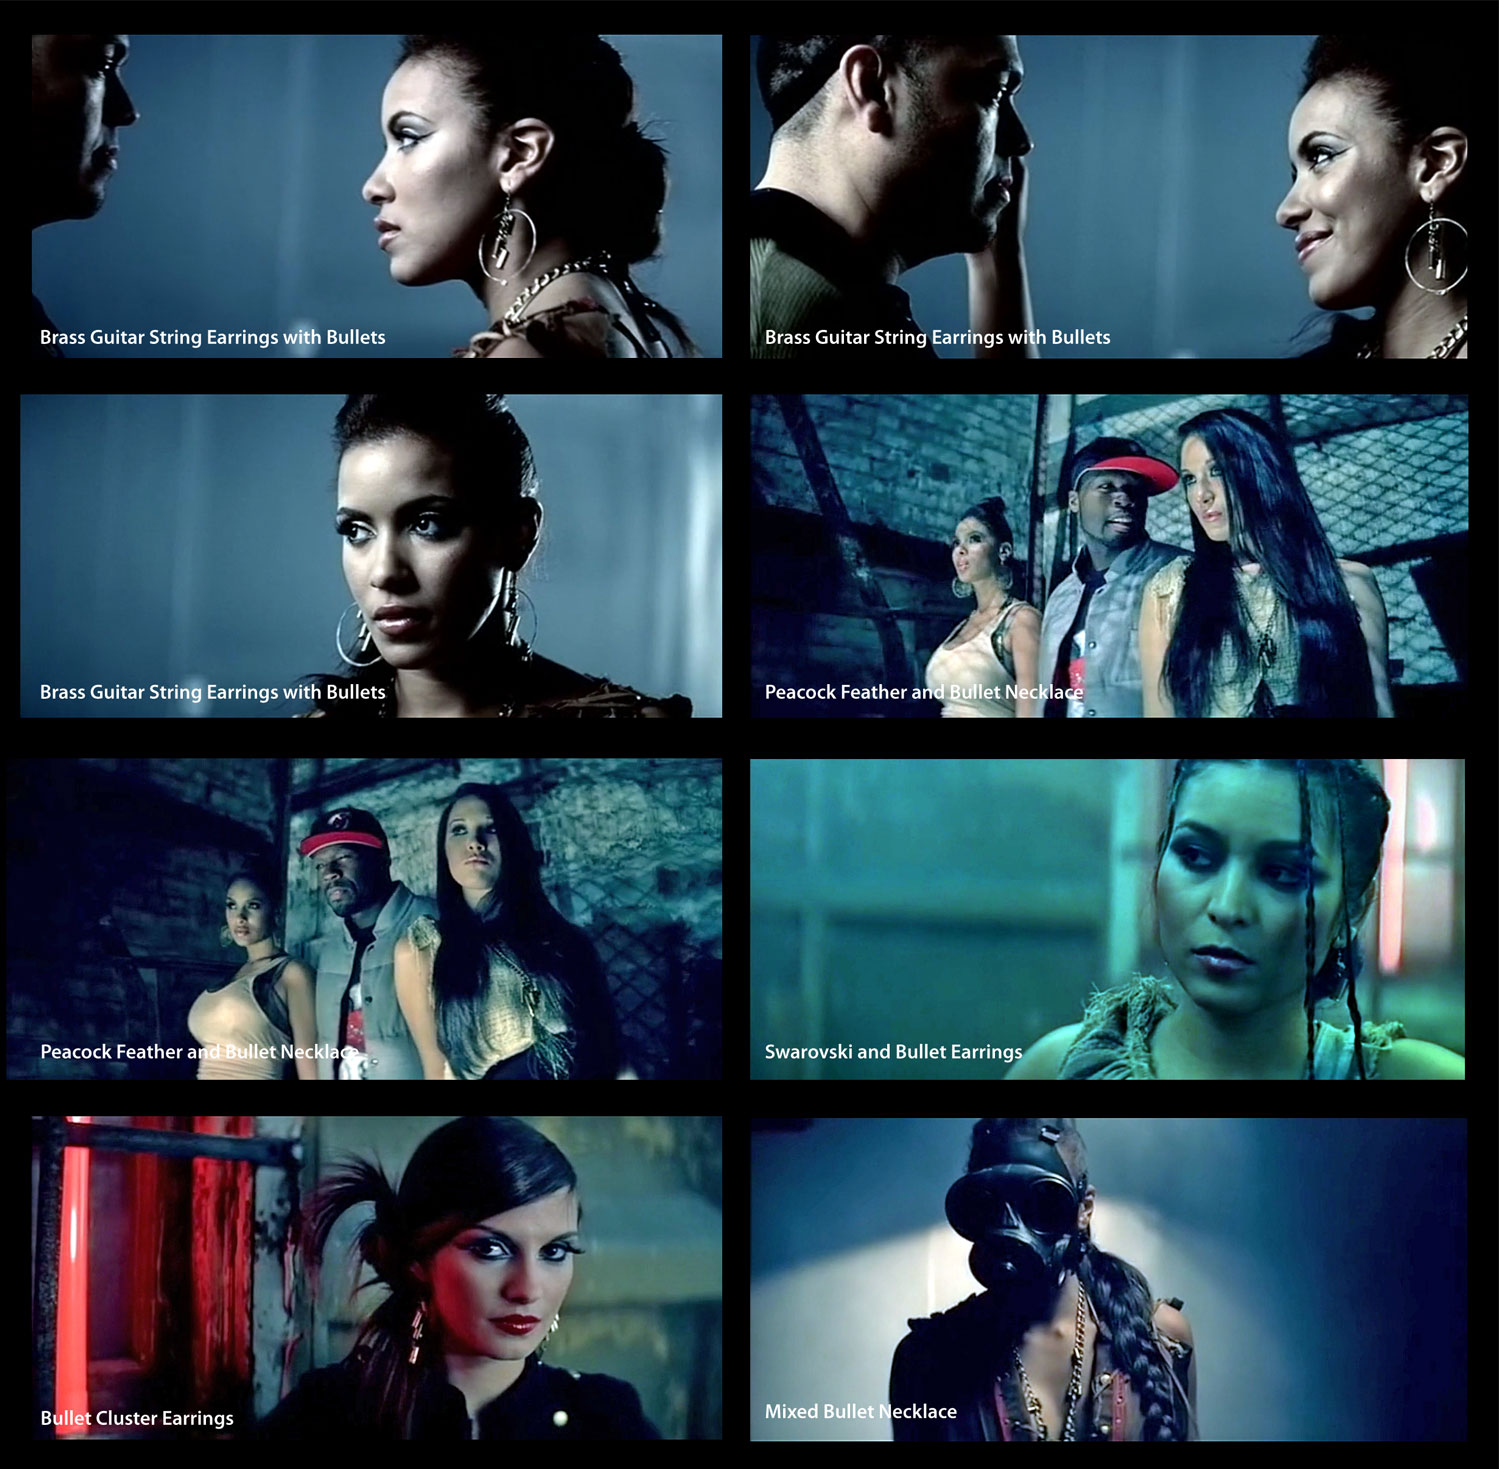 Astali Bullet Jewelry featured in video for Mujeres En El Club featuring 50 Cent